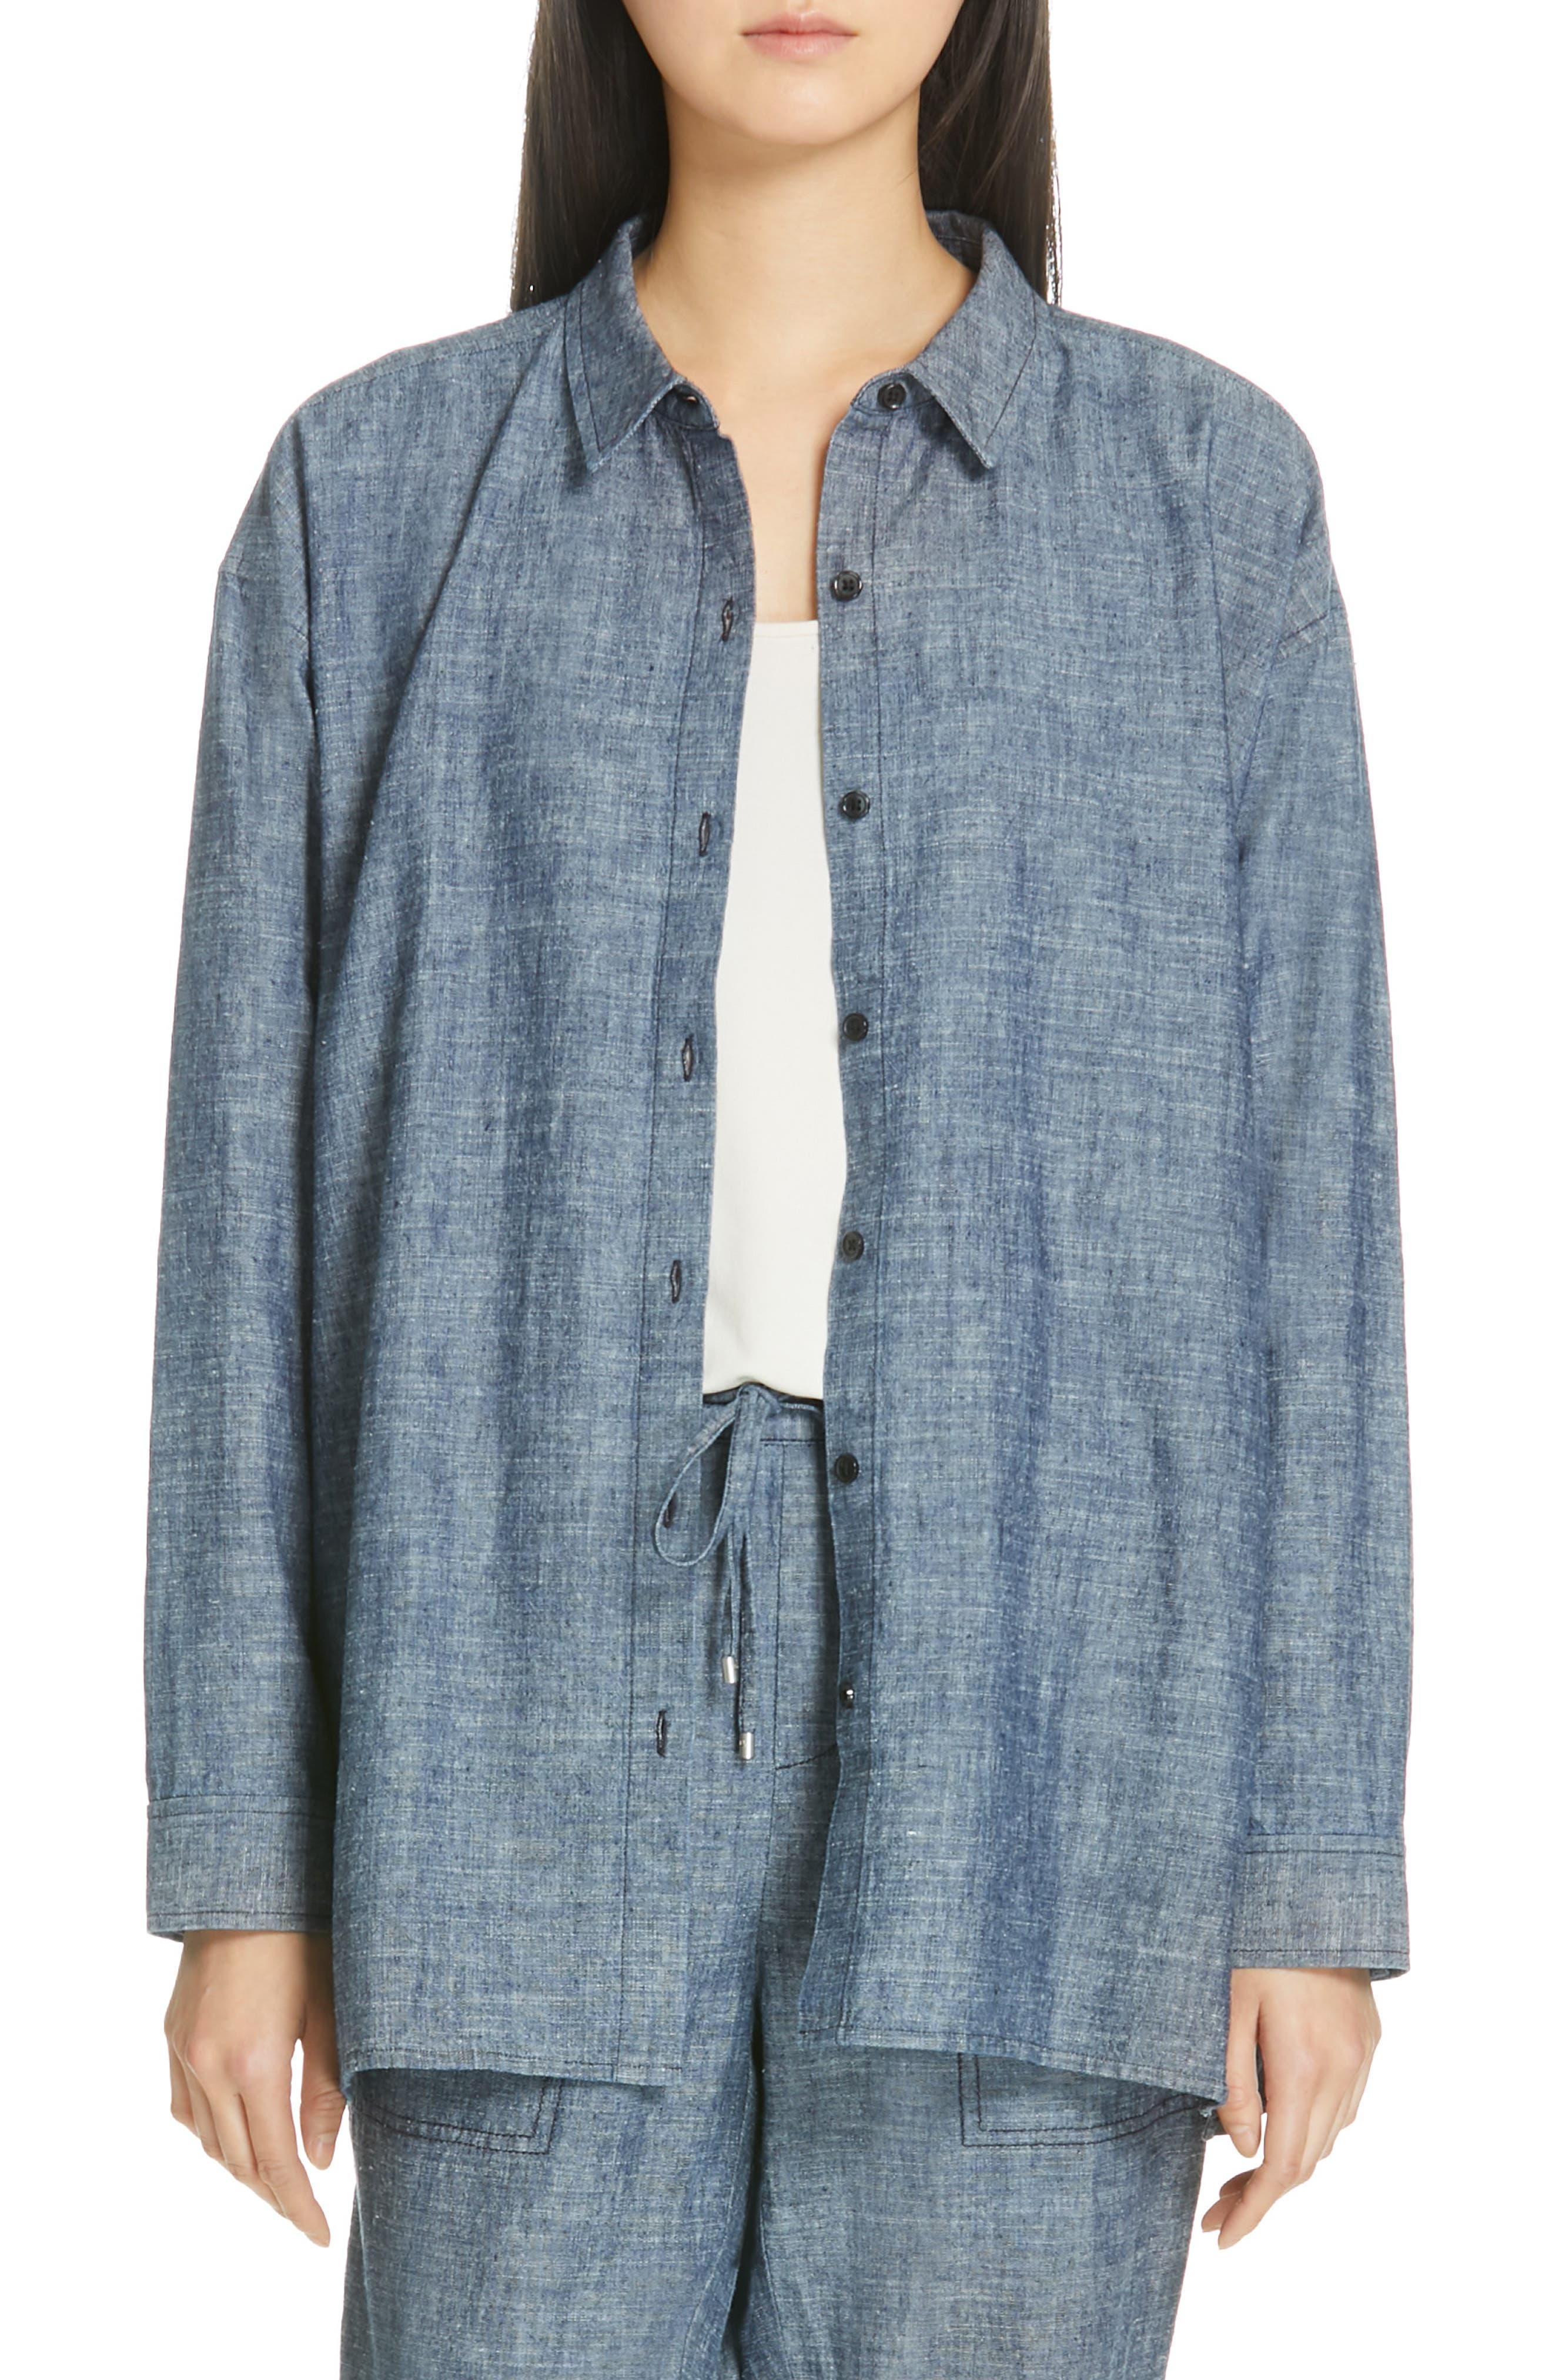 EILEEN FISHER, Woven Top, Main thumbnail 1, color, DENIM